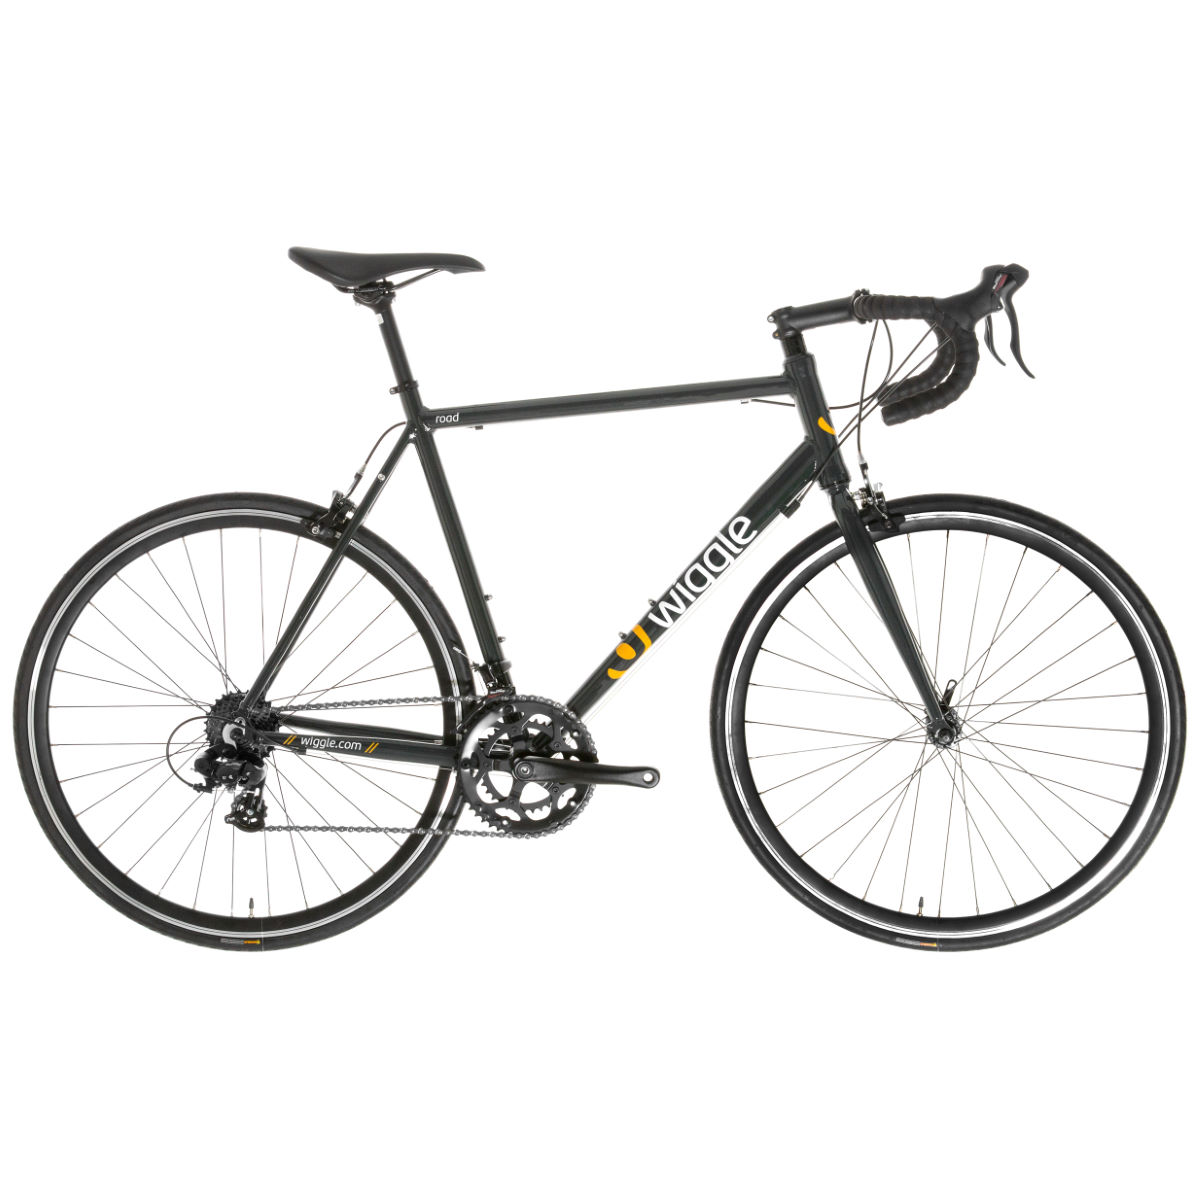 Wiggle road bike road bikes black 1wgmy16r7048uk0001 6